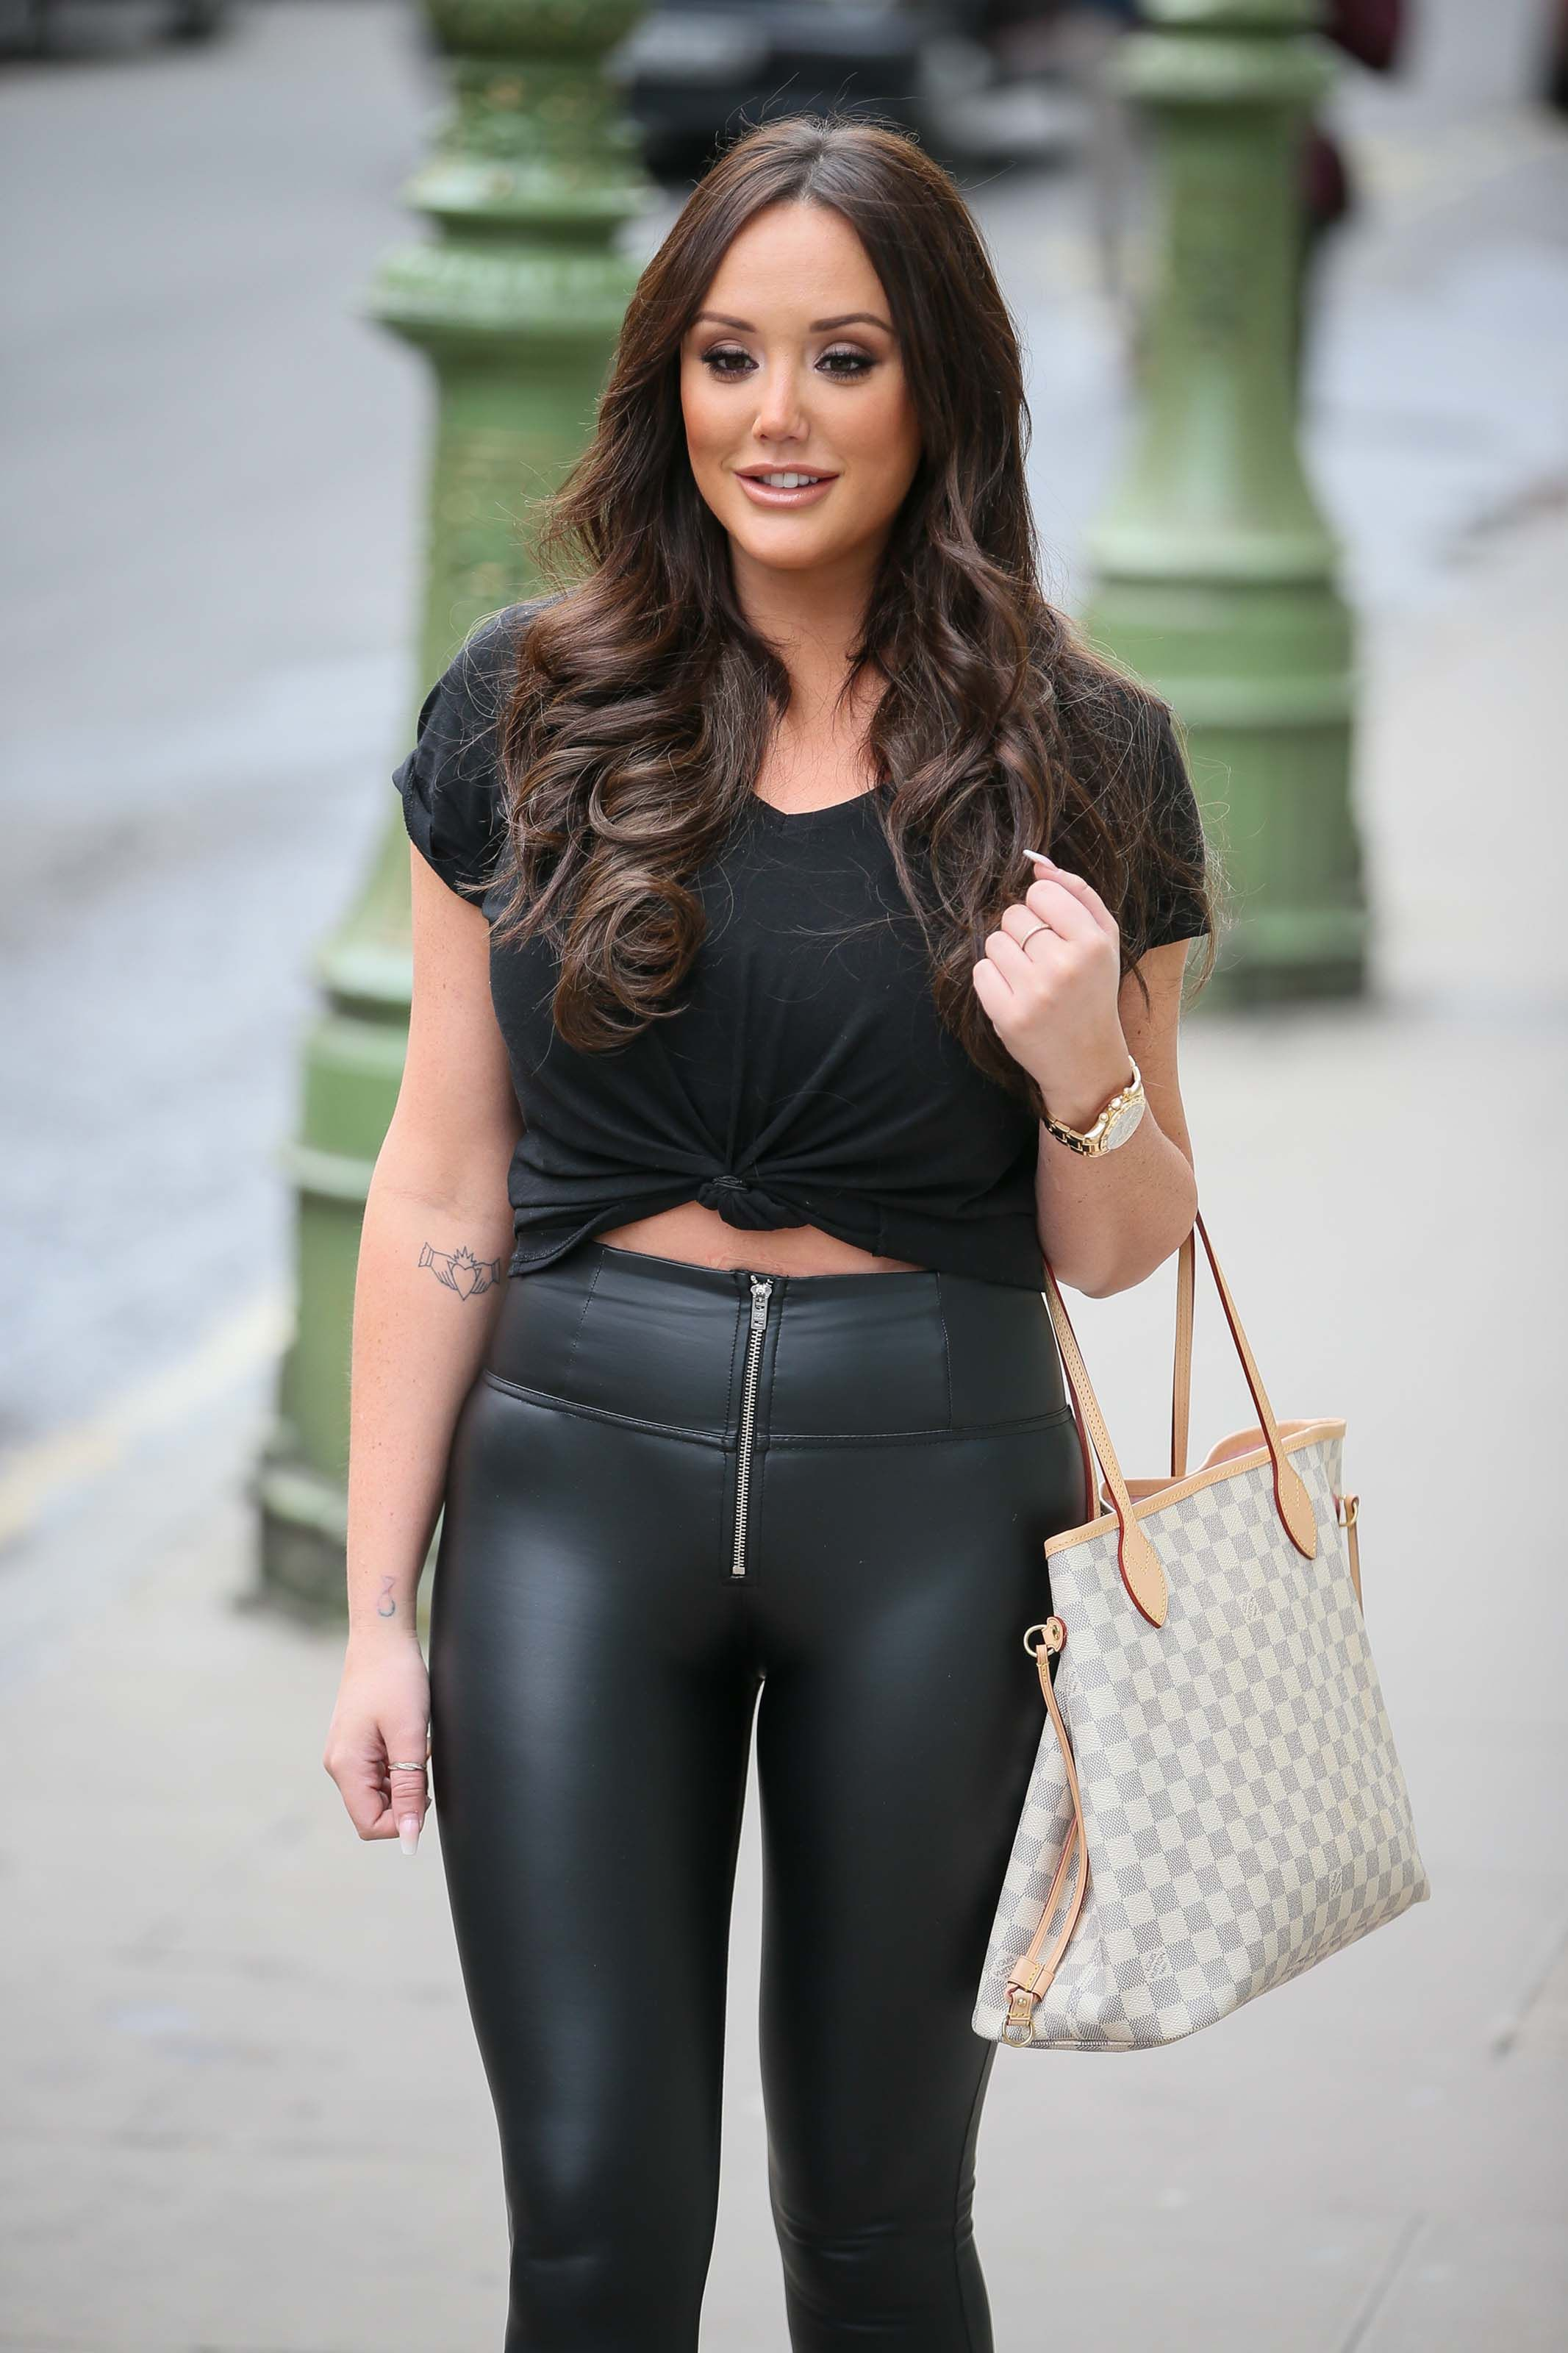 dcbba1d8e45 Charlotte Crosby at Charlotte Street Hotel